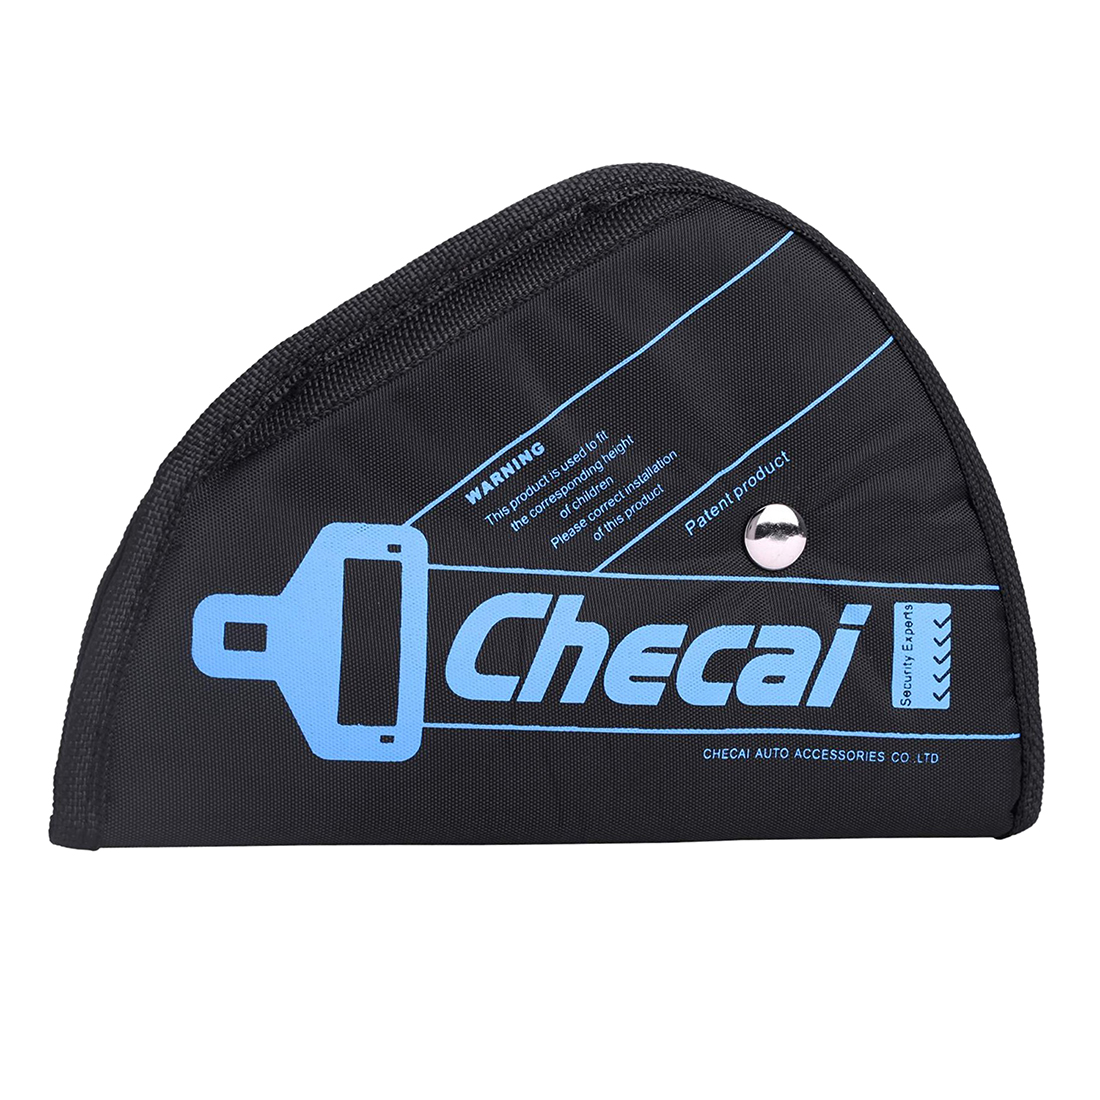 CHECAI Child Kids Baby Adjustment Auto Car Belt Adjuster Safety Seat Belt Positioner Black